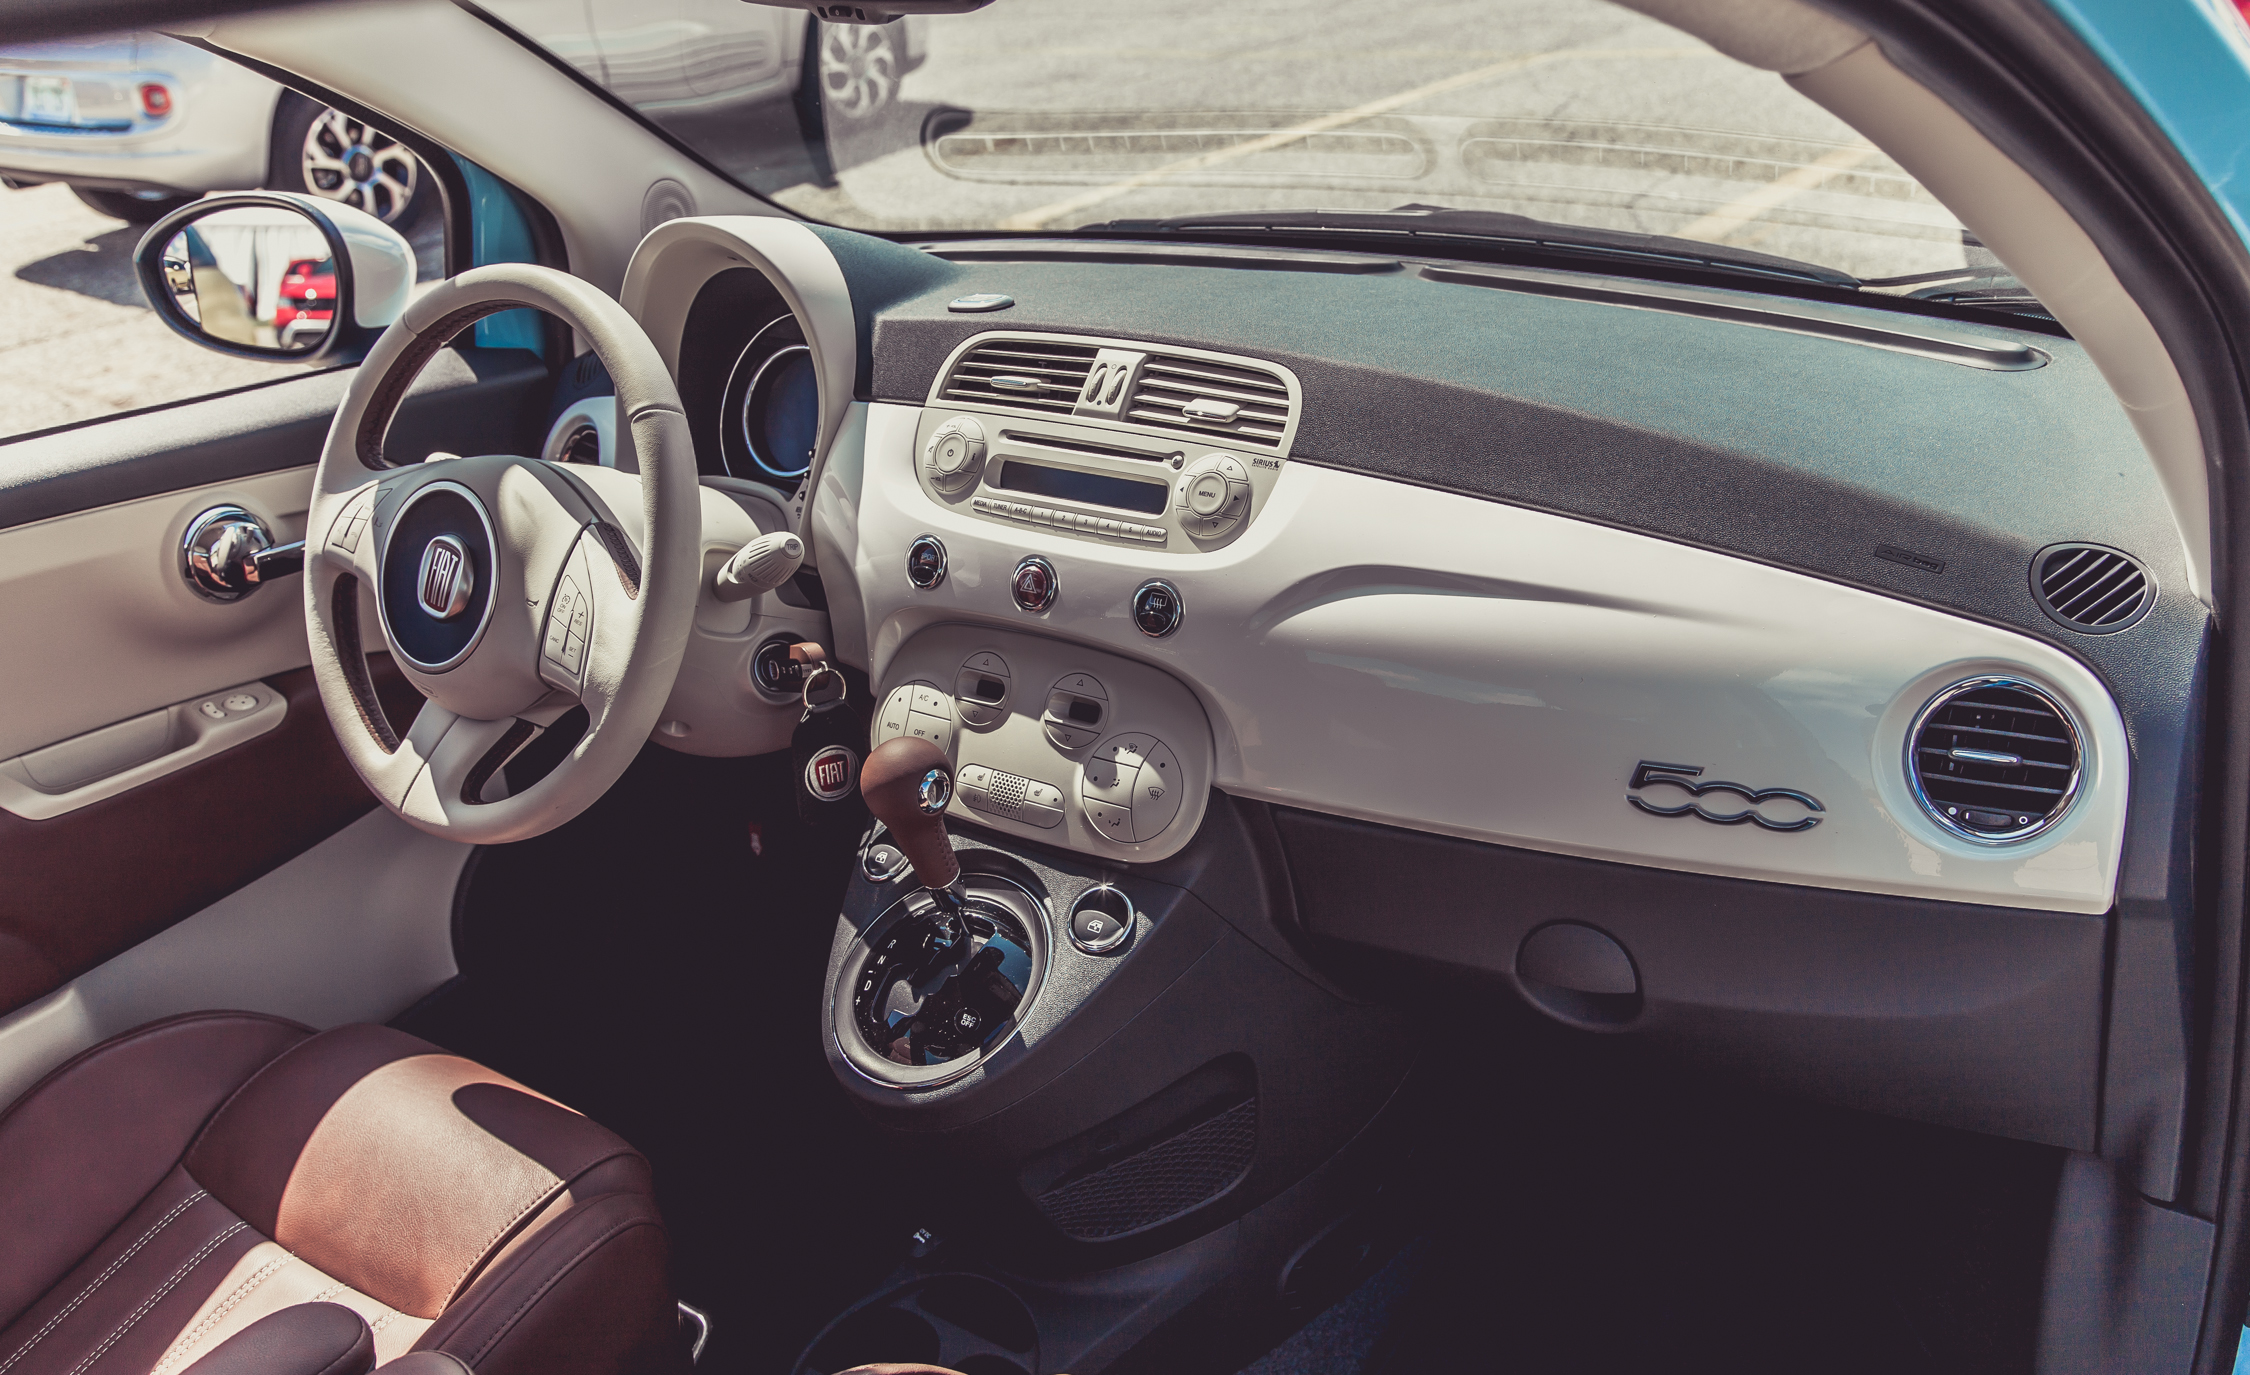 2014 Fiat 500 1957 Edition Interior (View 2 of 12)